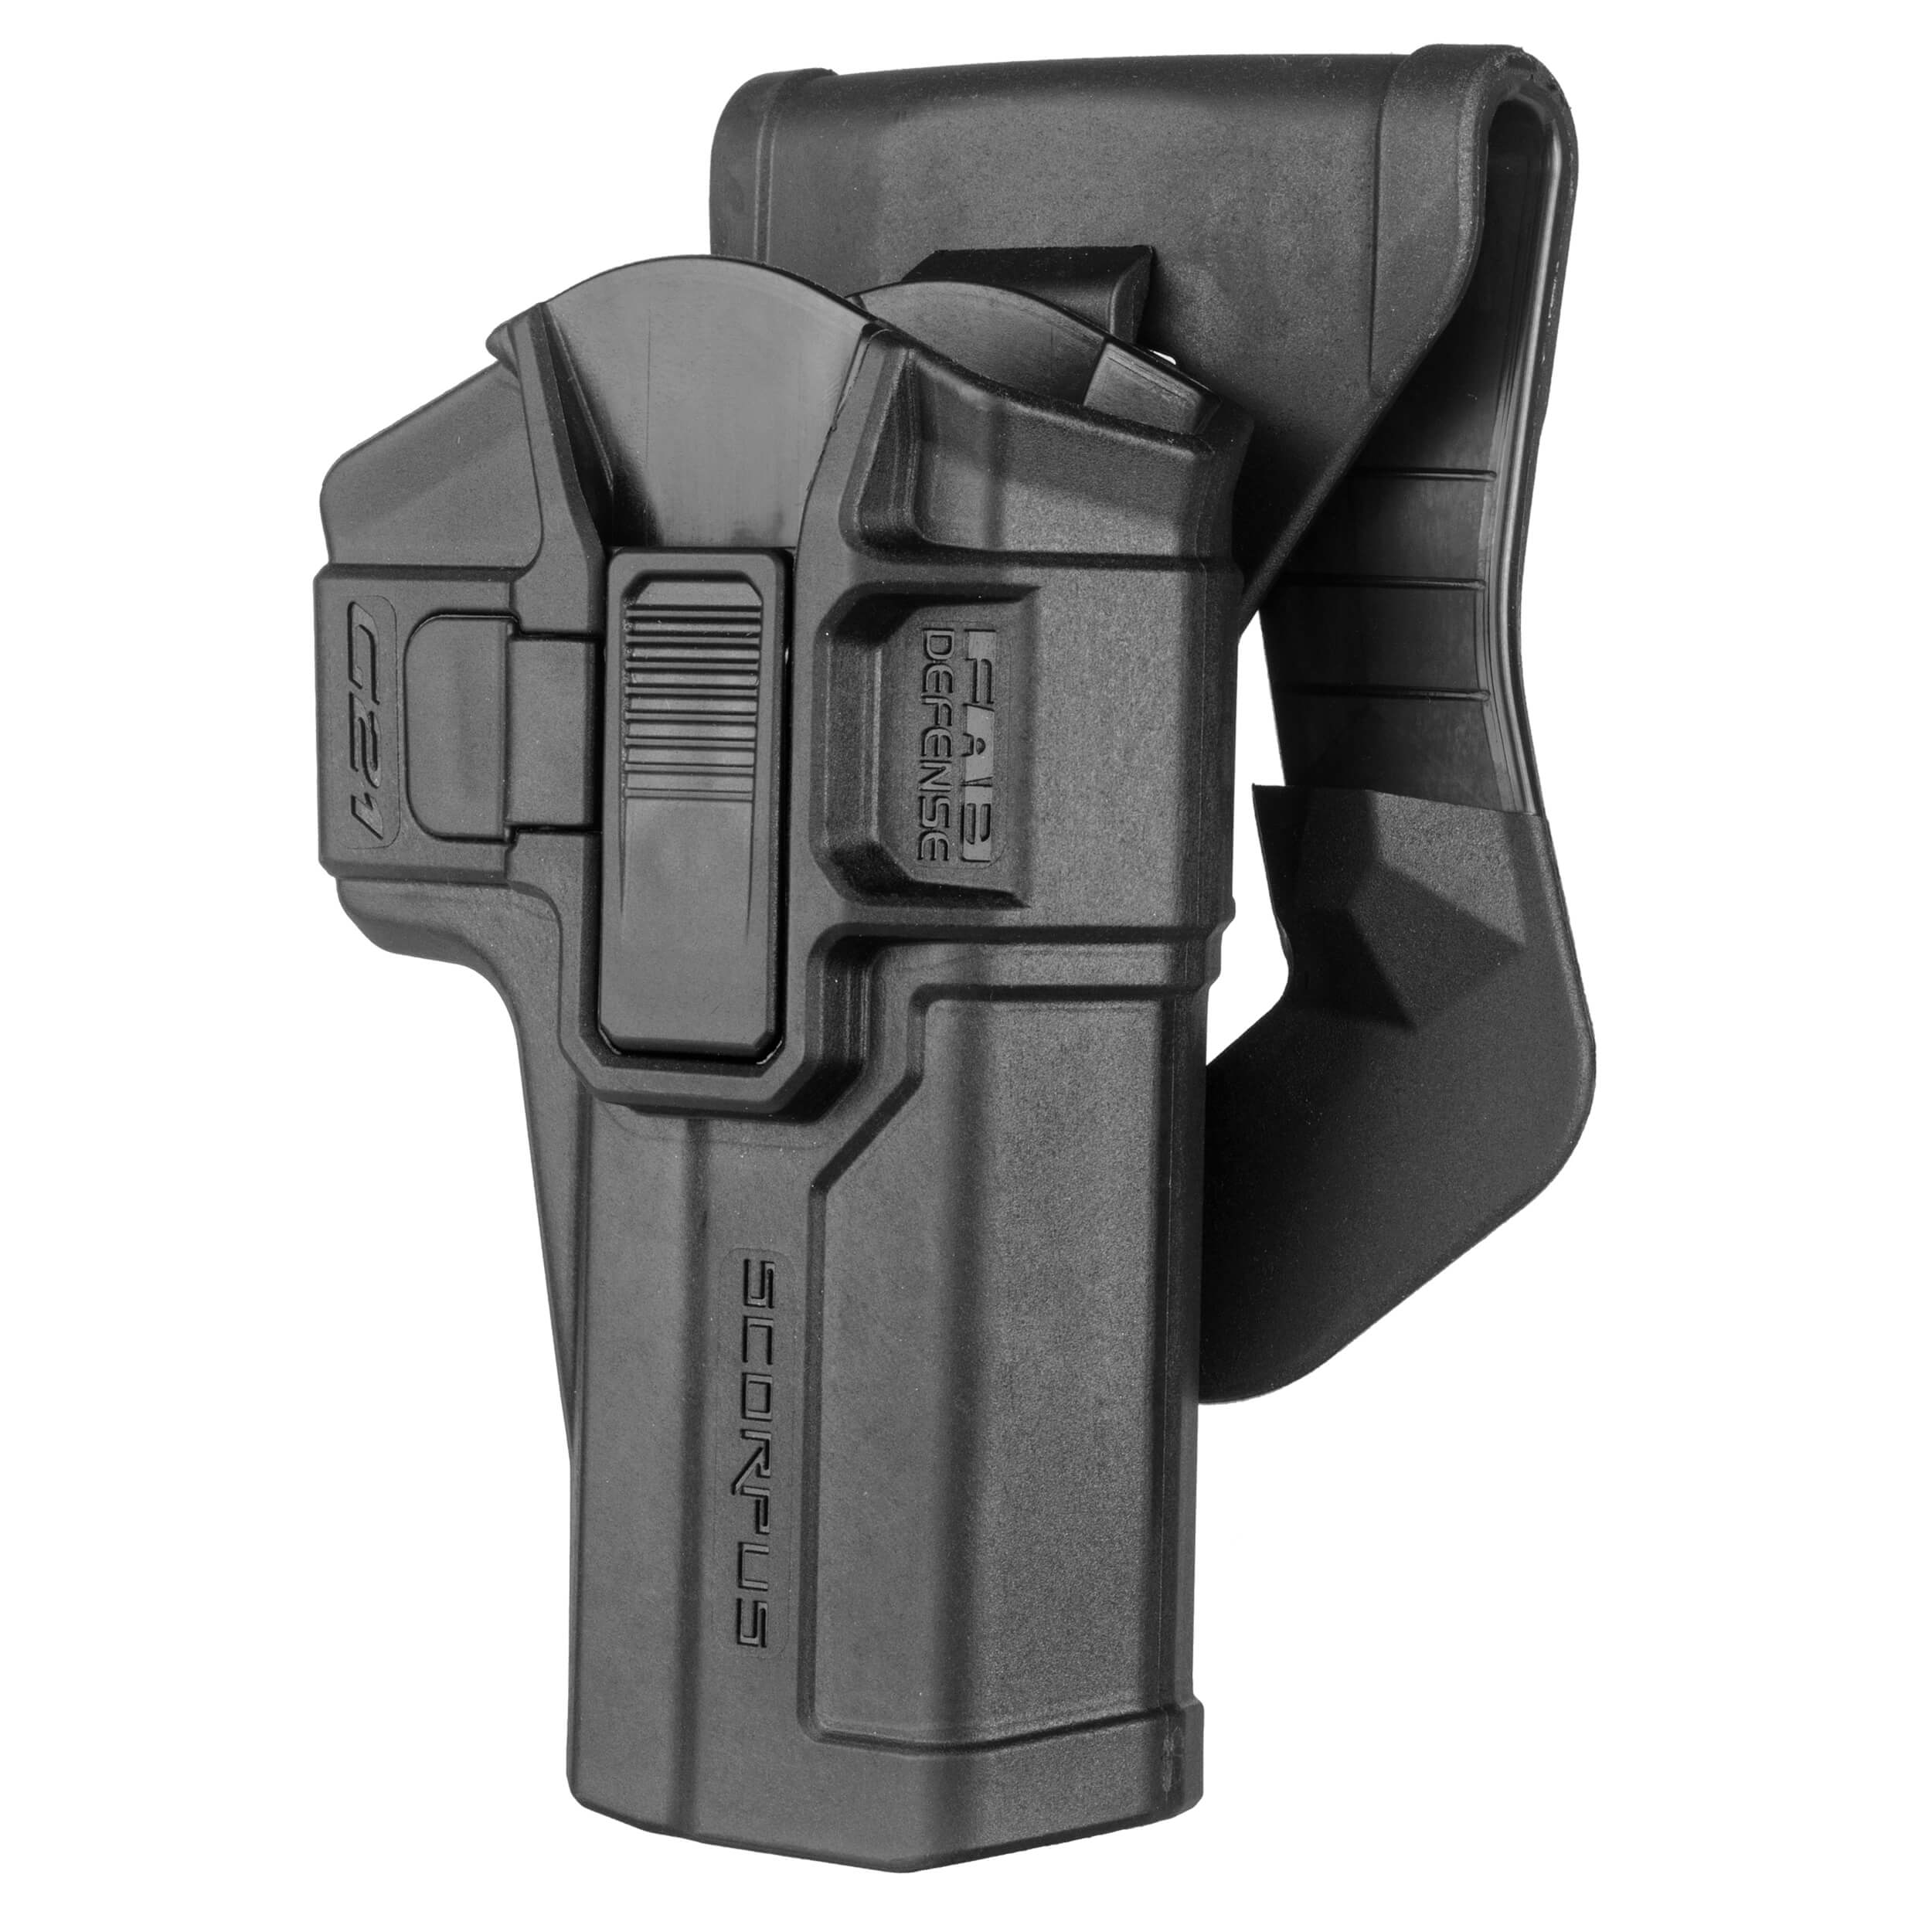 CZ P-10 C  R  (Level 2)  M1 Holster for CZ Pistols